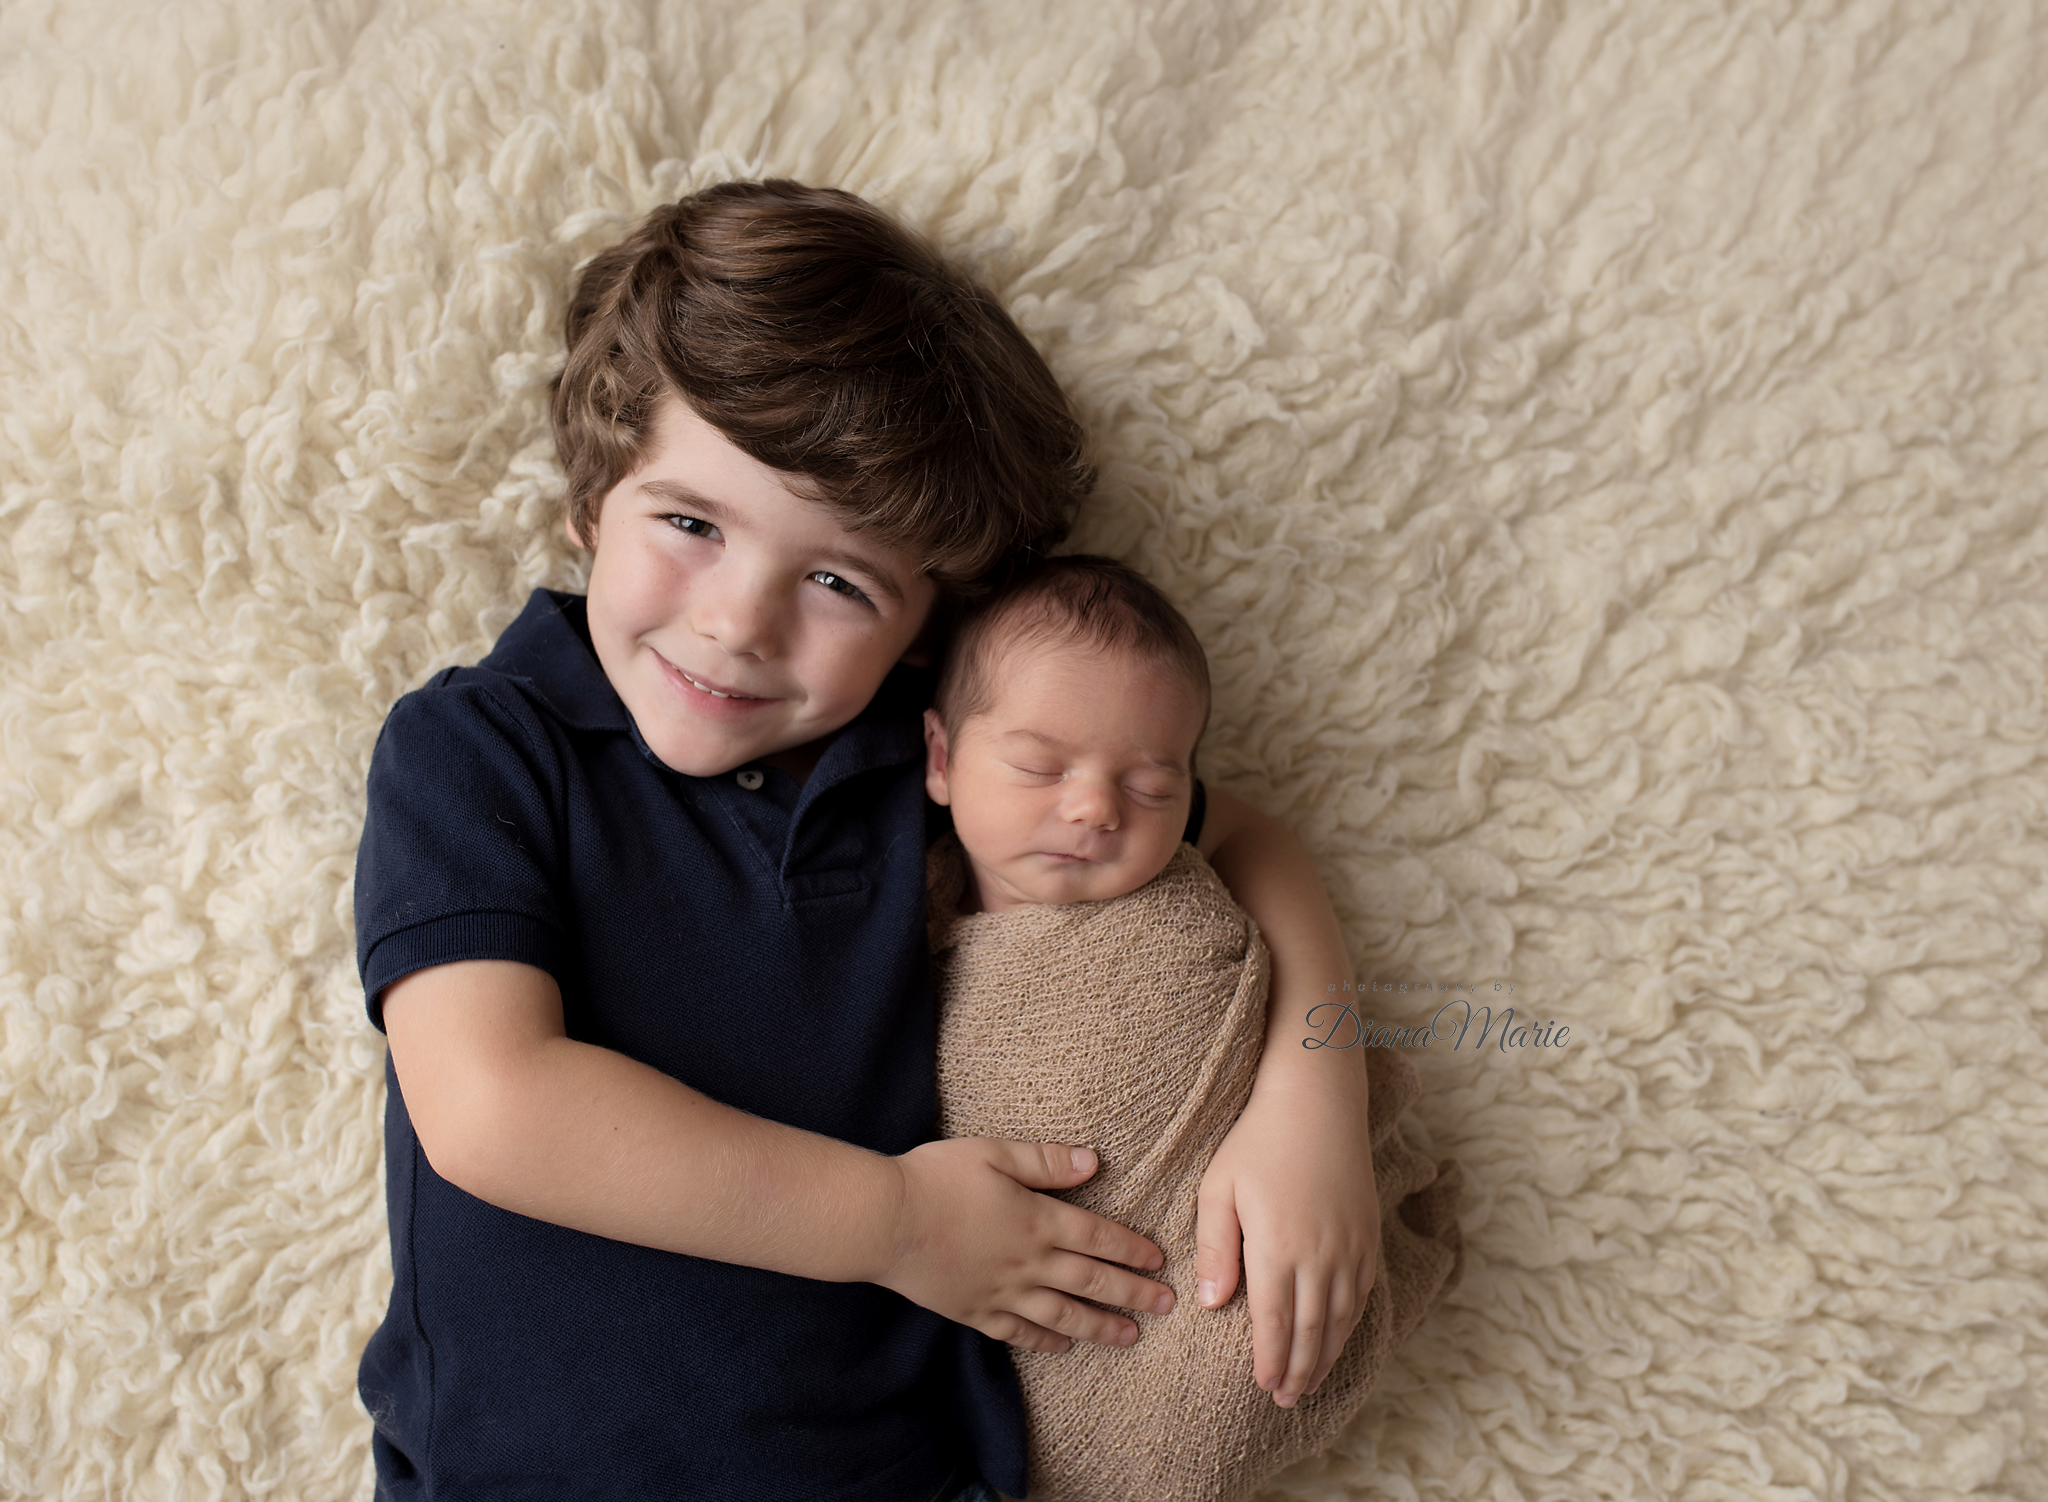 Titling/Alt Text/Description: 1. Jacksonville Newborn Photography 2. Jacksonville Newborn Photographer 3. St Augustine Newborn Photography 4. Florida Photographer 5. Newborn and Sibling Photo 6. Flokati